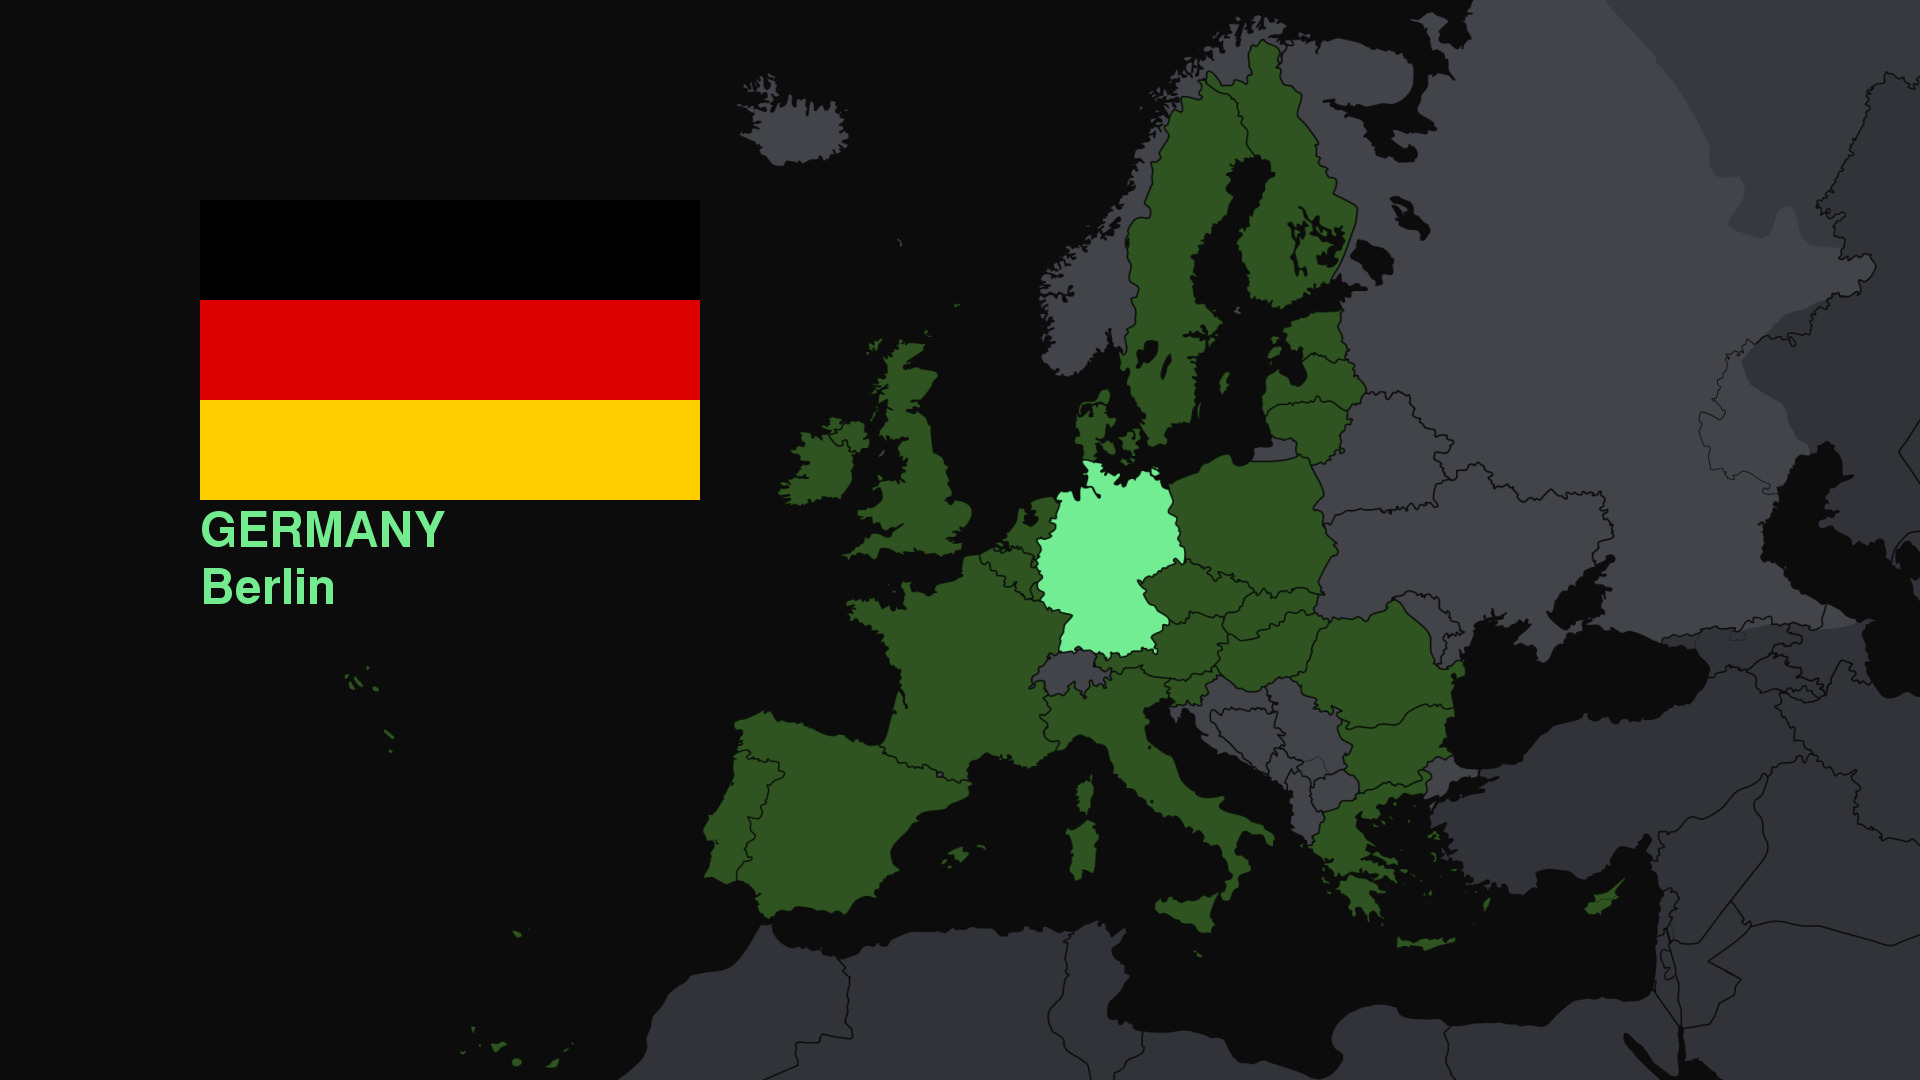 germany Flags Europe Maps HD Wallpaper